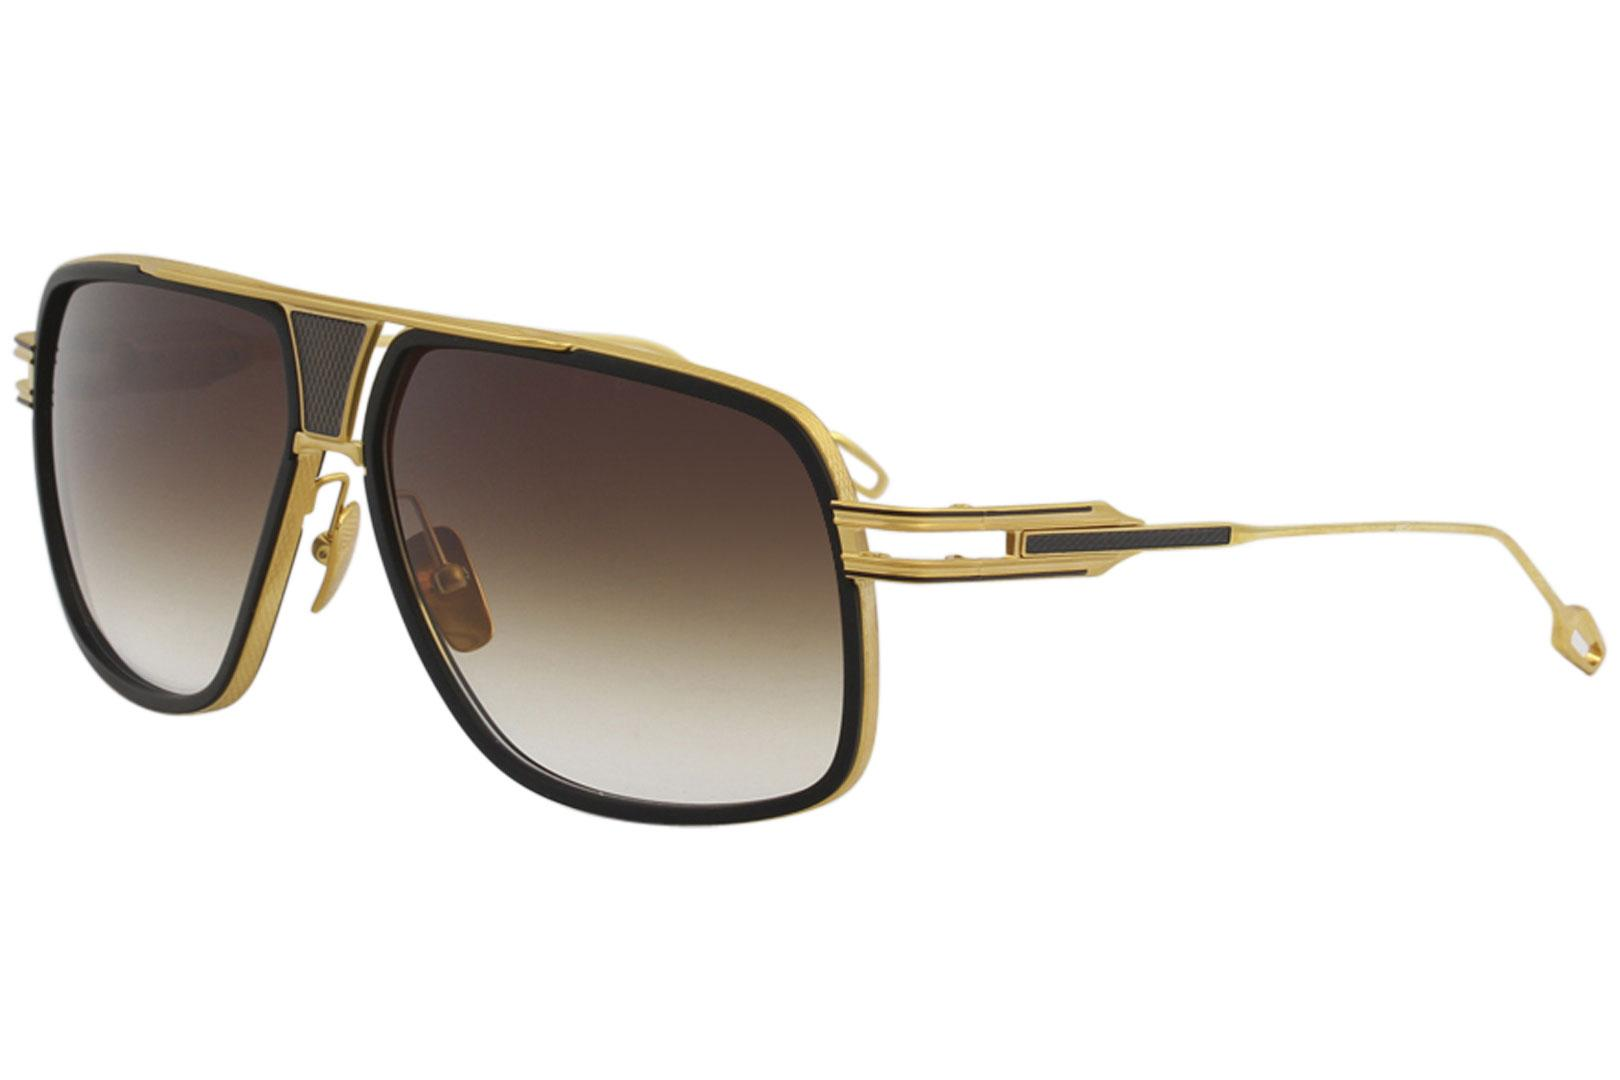 a4befea7d09 Dita Men s Grandmaster-Five DRX-2077 18K Gold Fashion Pilot Titanium  Sunglasses